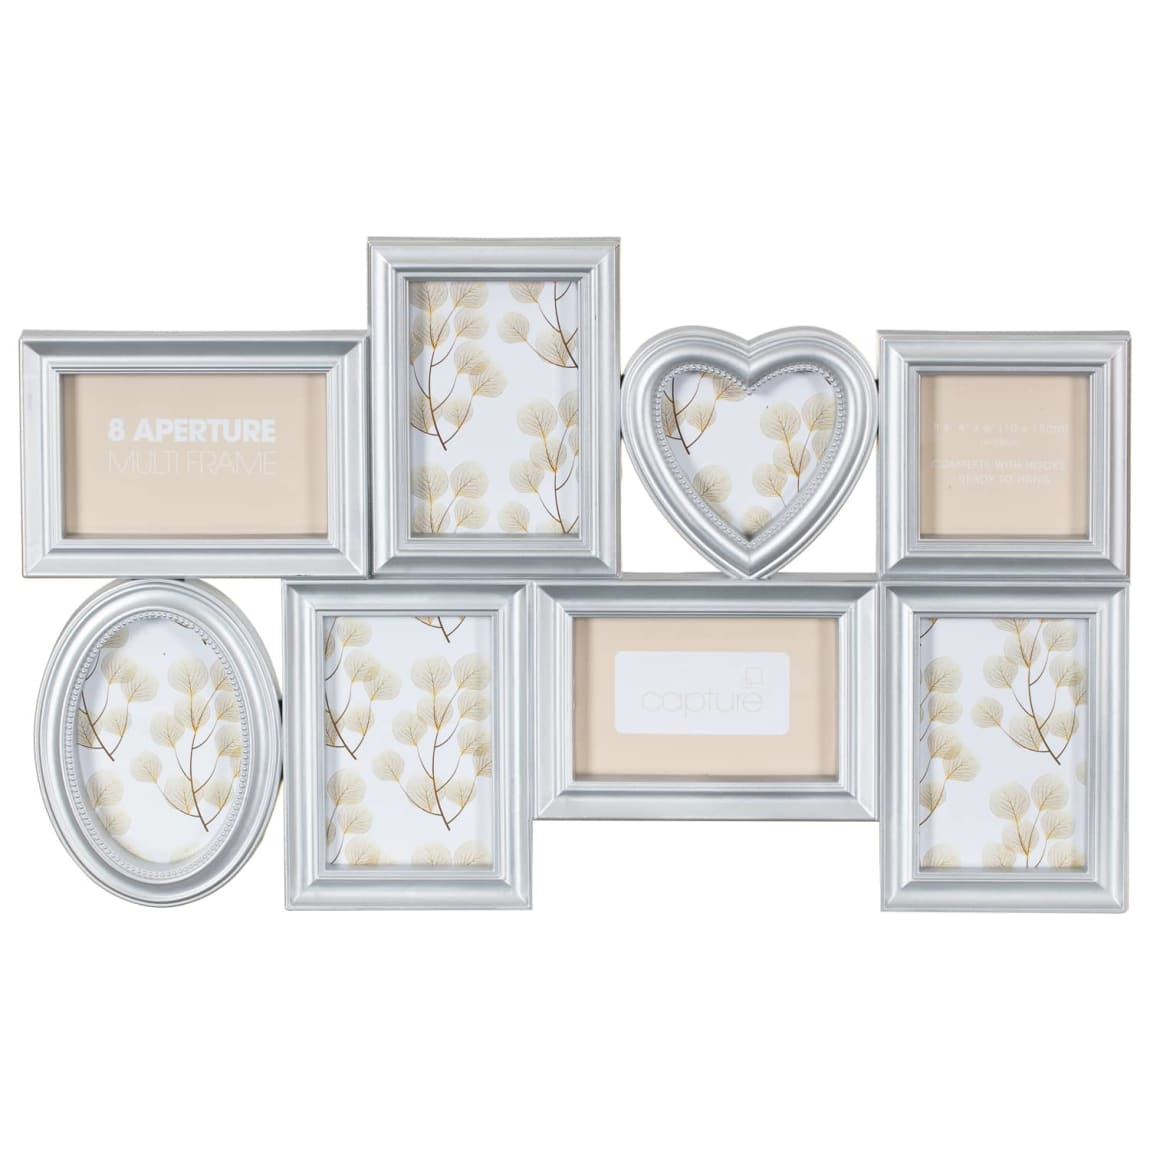 Heart Aperture Photo Frame 8pc - Silver